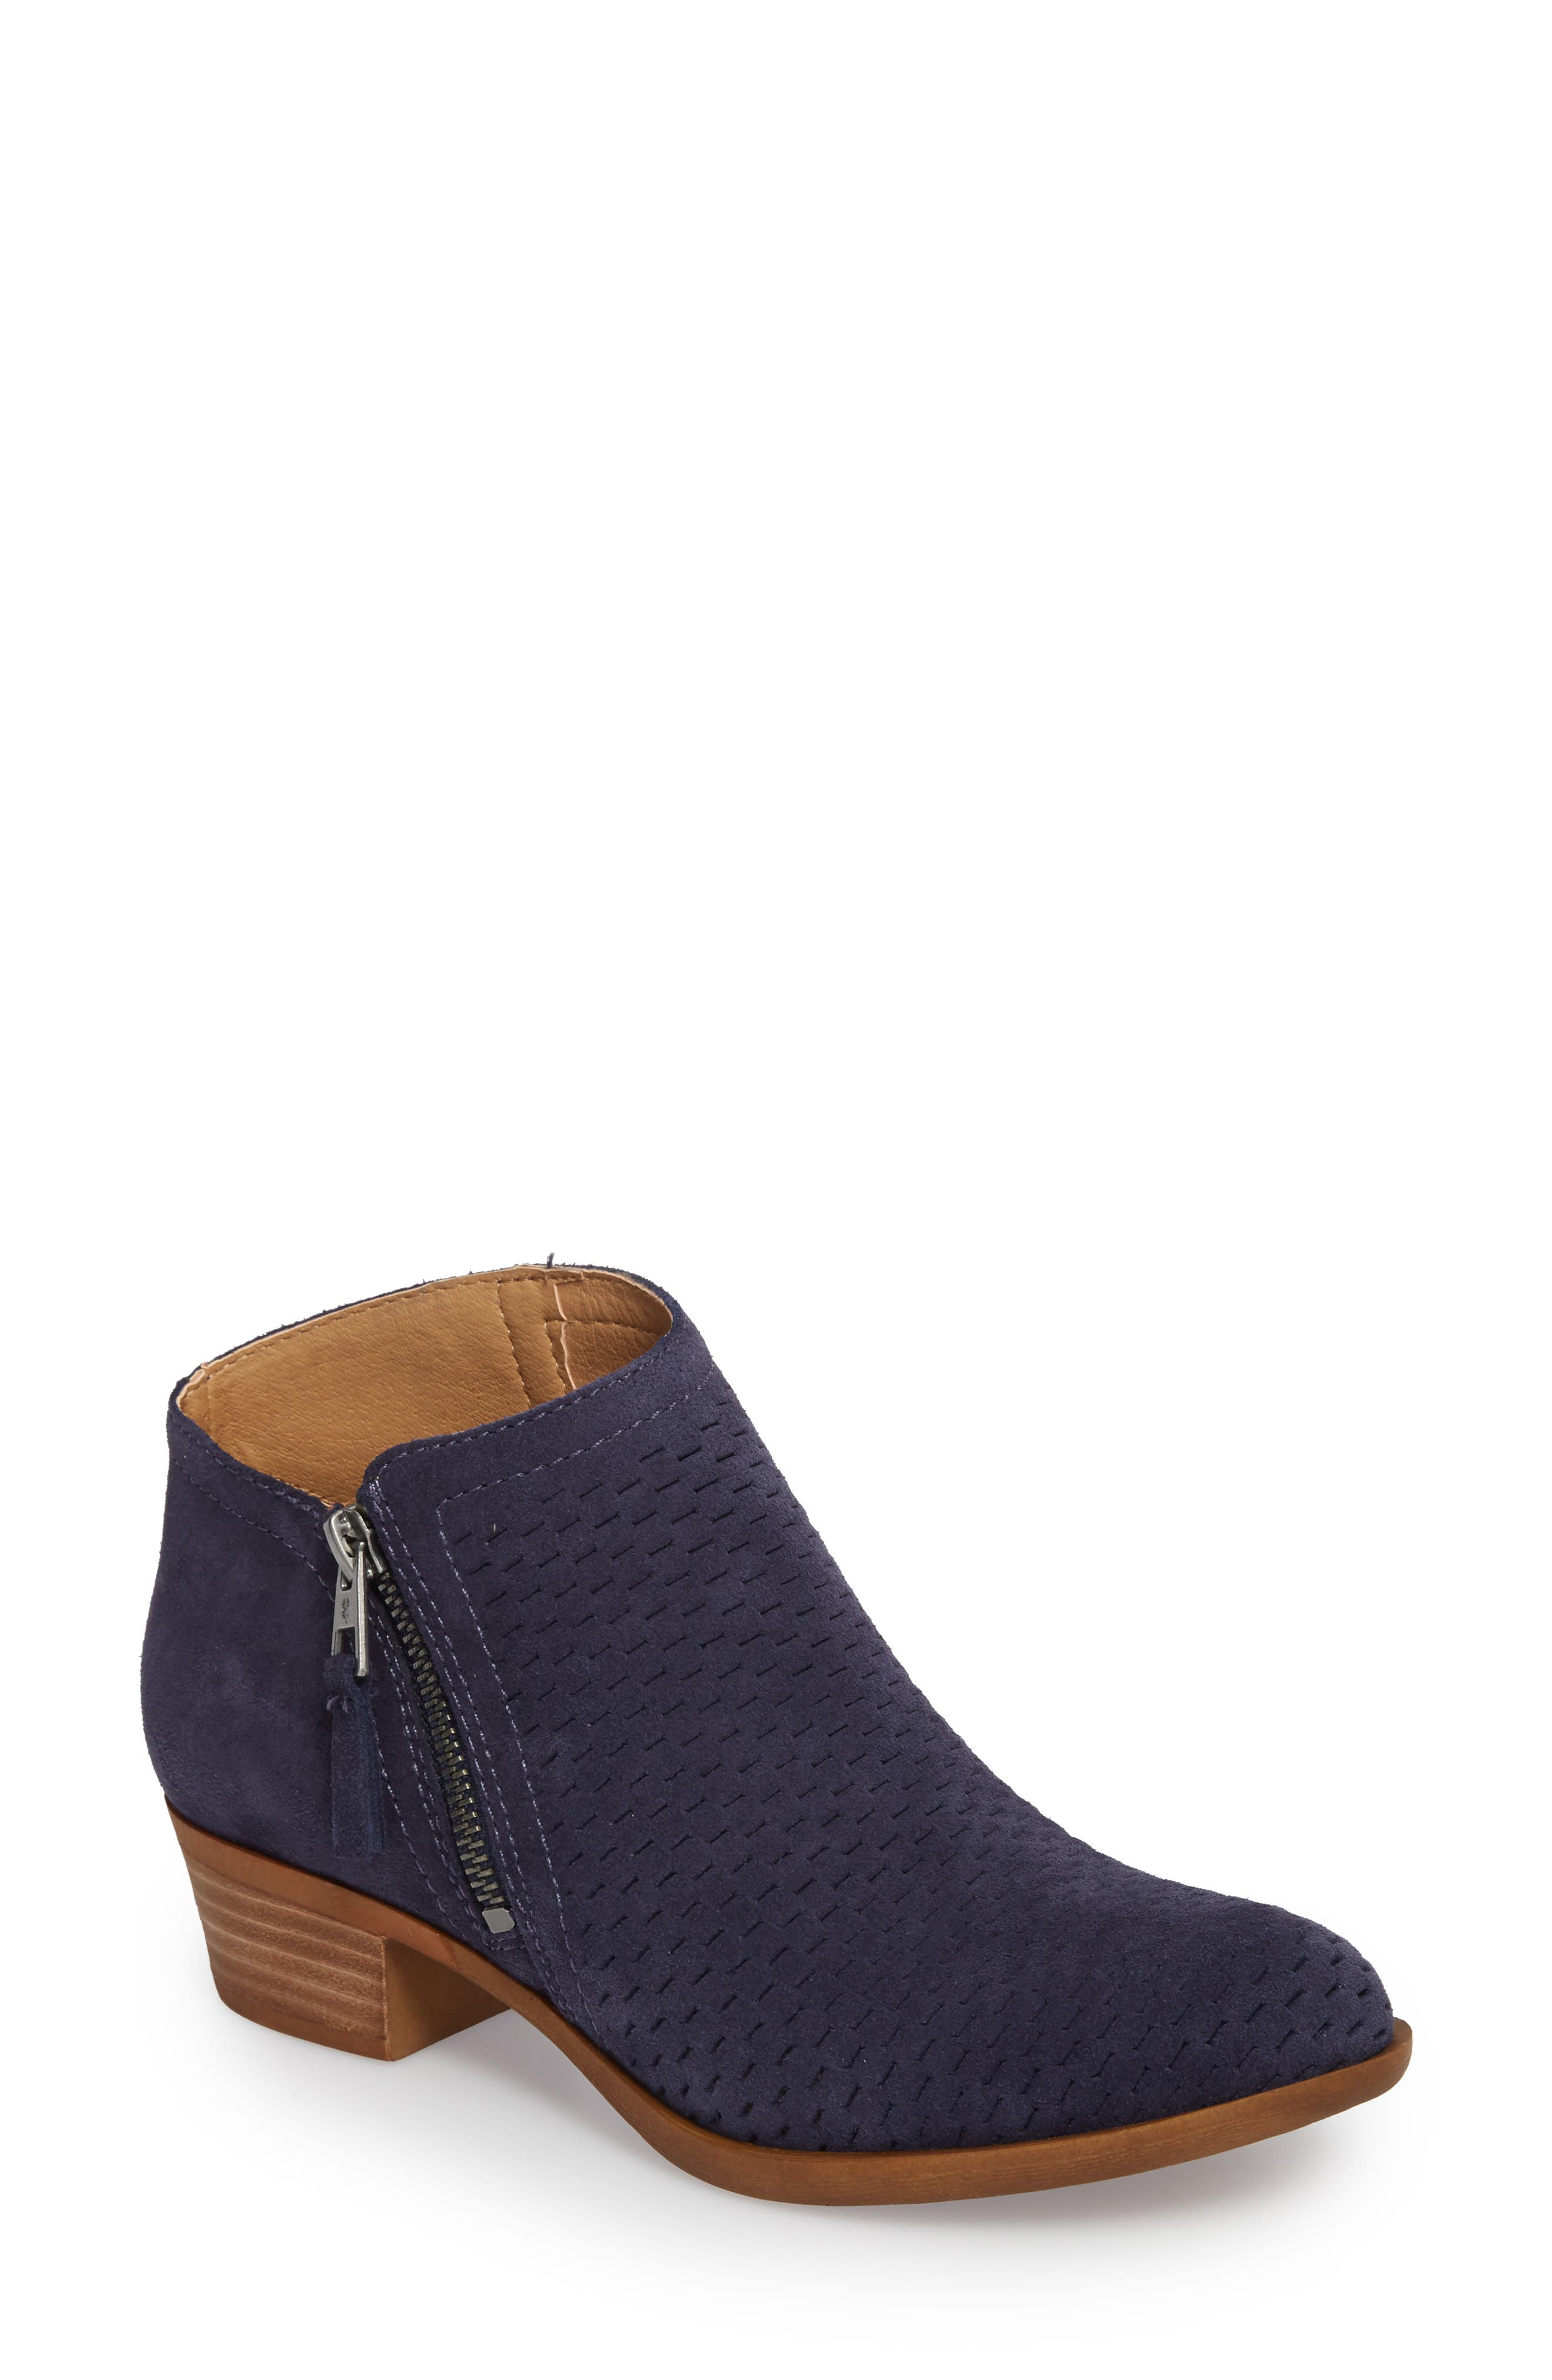 Lucky Brand Brielley Perforated Bootie, Blue